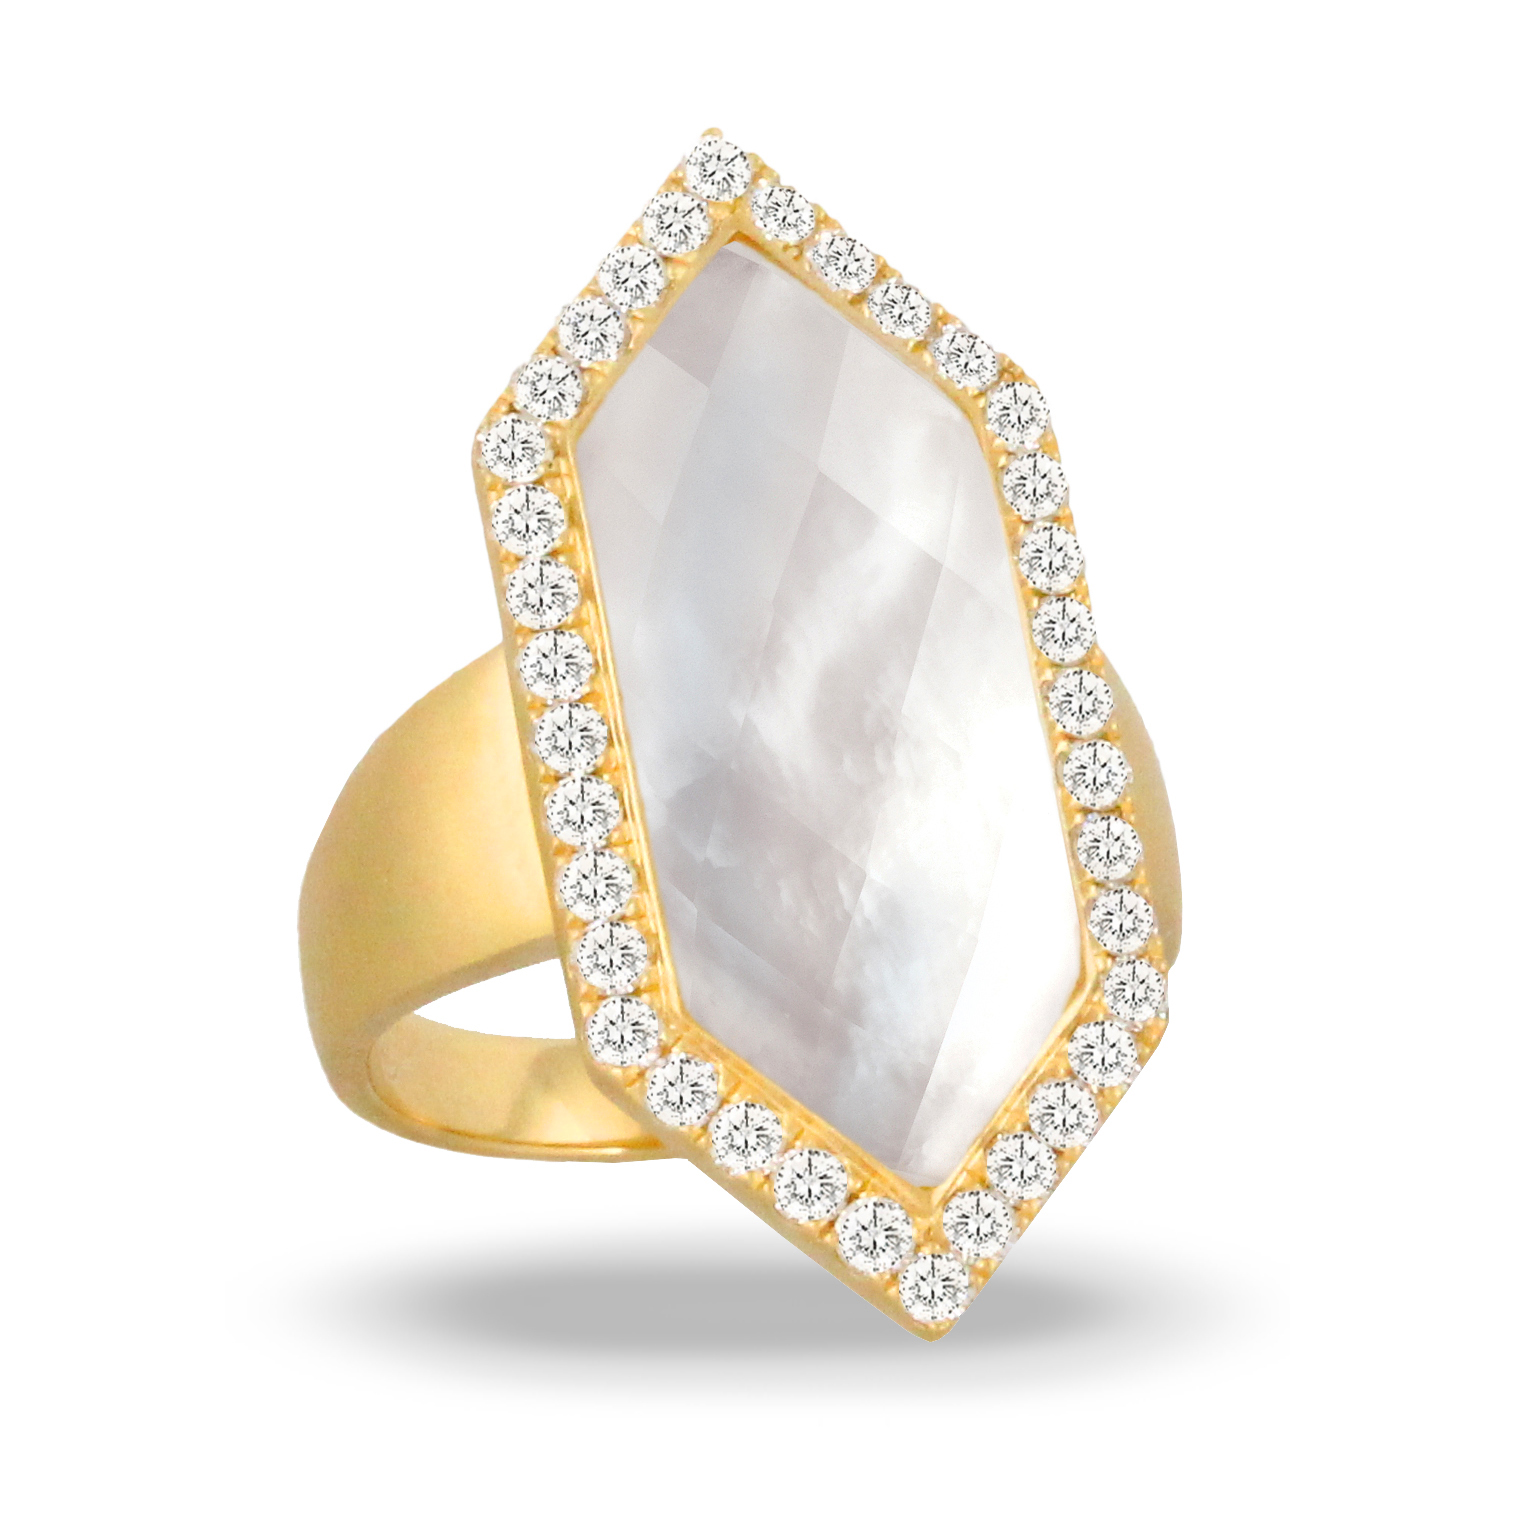 18K YELLOW GOLD RING by Dove